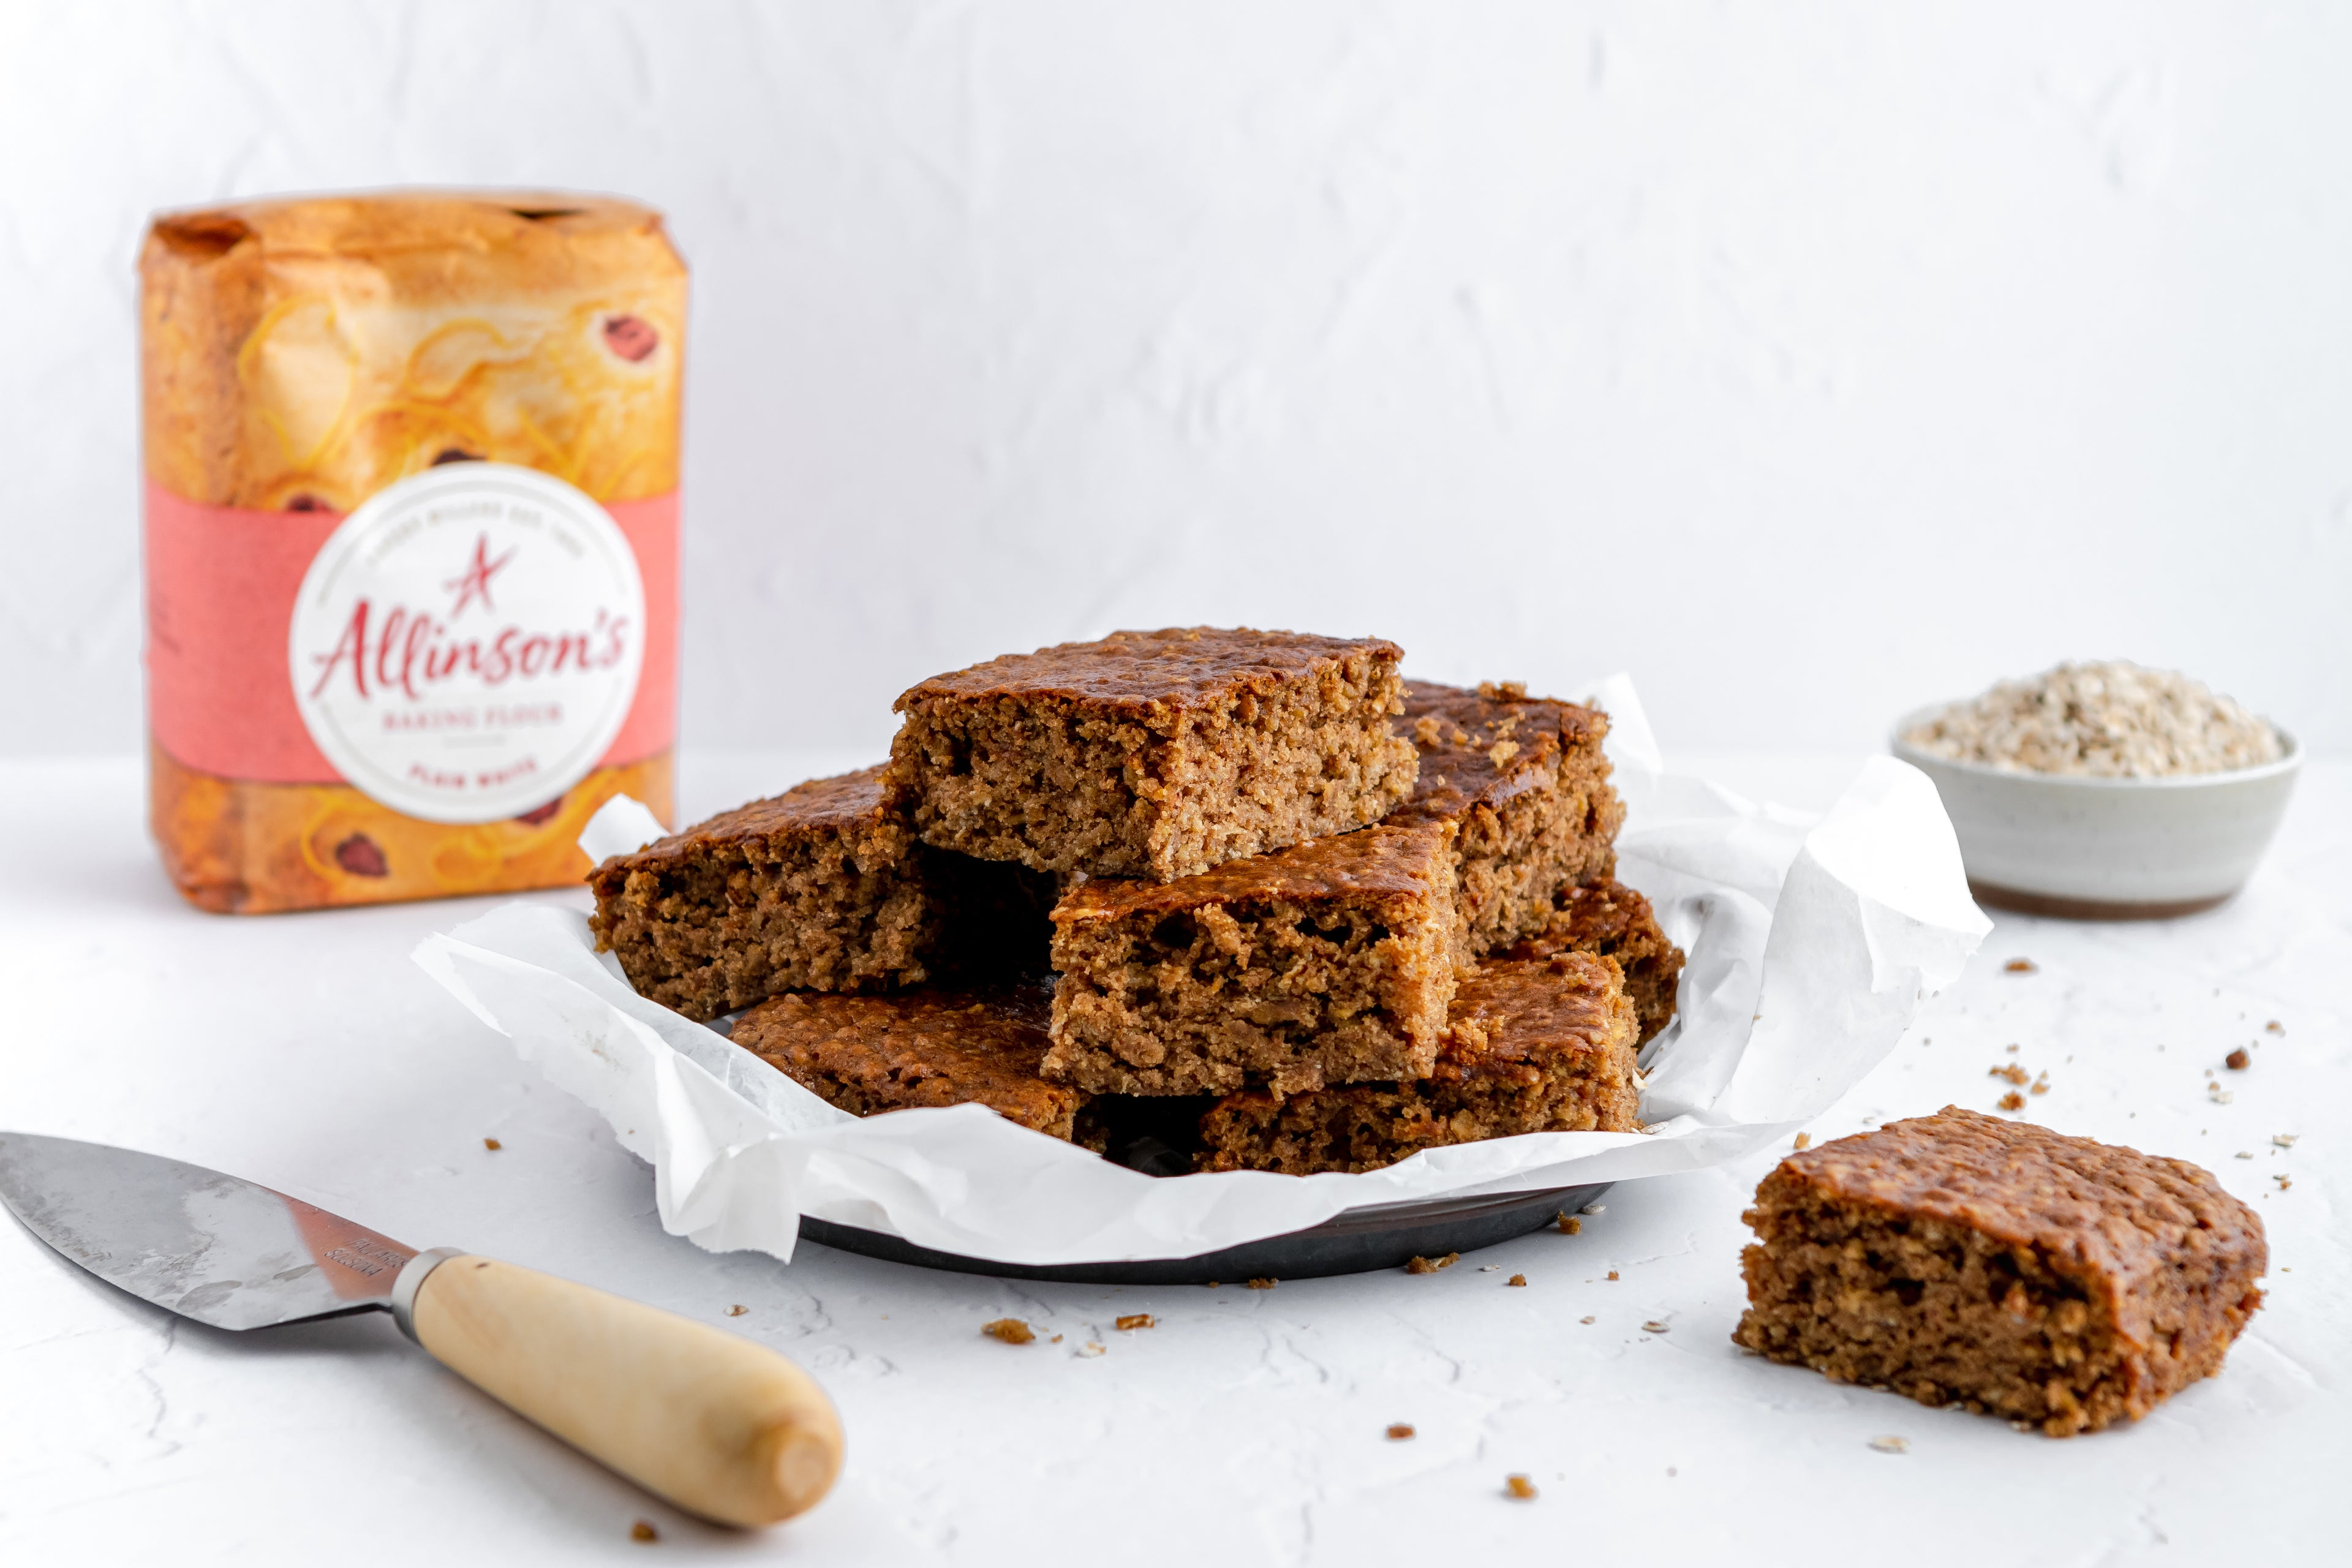 Sticky Yorkshire Parkin slices next to Allinson's Plain White flour, and a cake knife